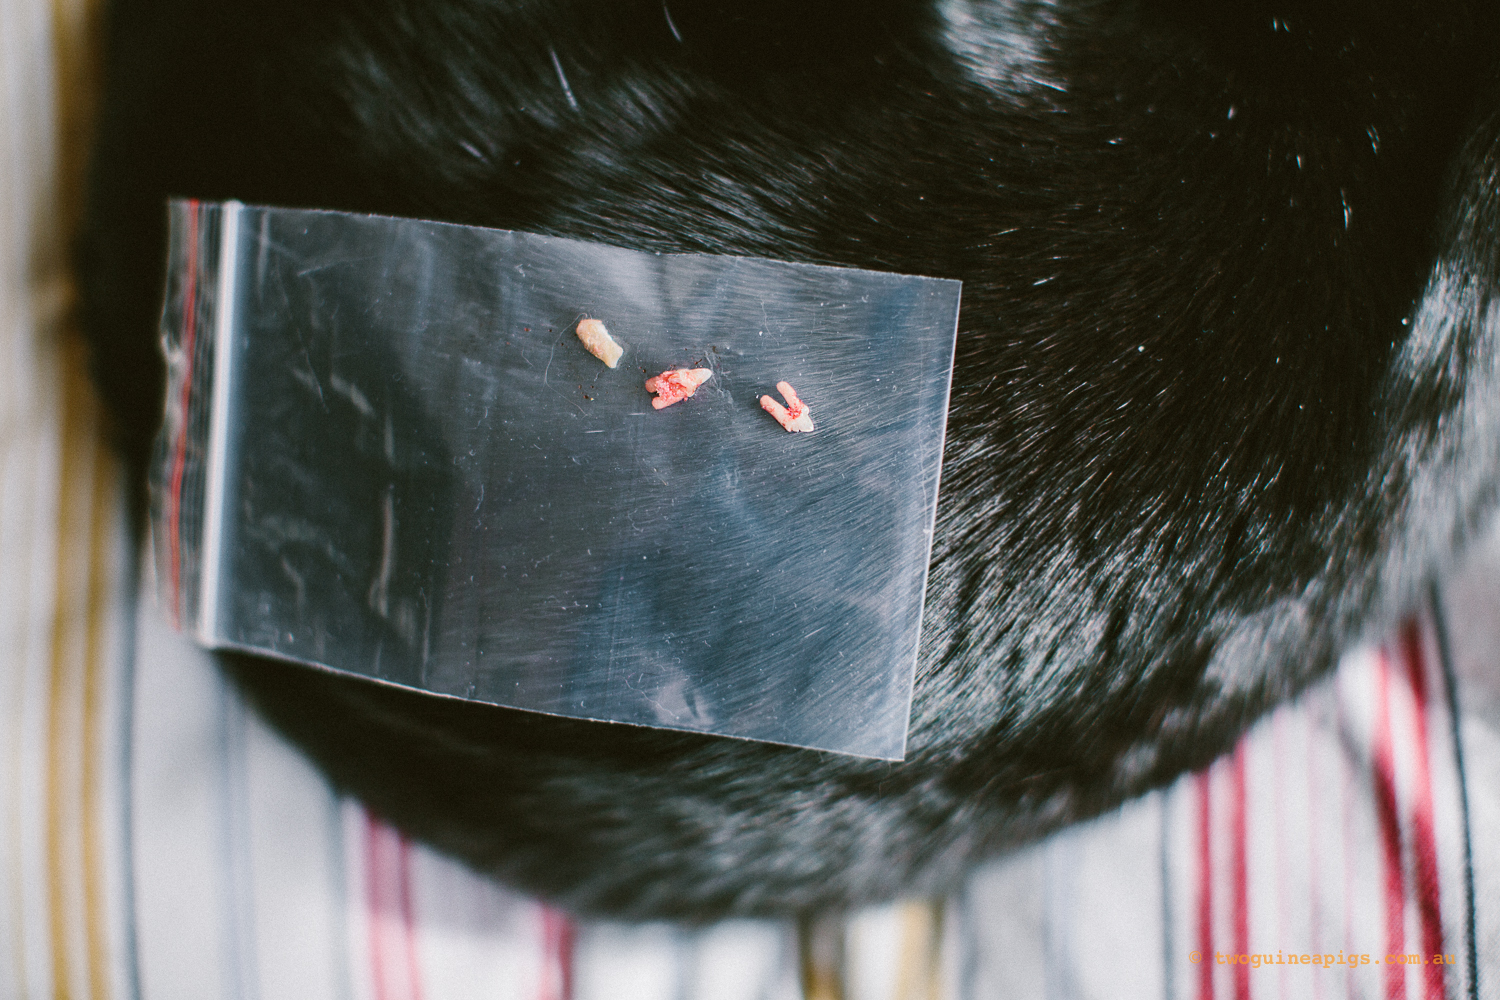 twoguineapigs_pet_photography_blackcats_pf_back_from_dental_surgery_1500-19.jpg